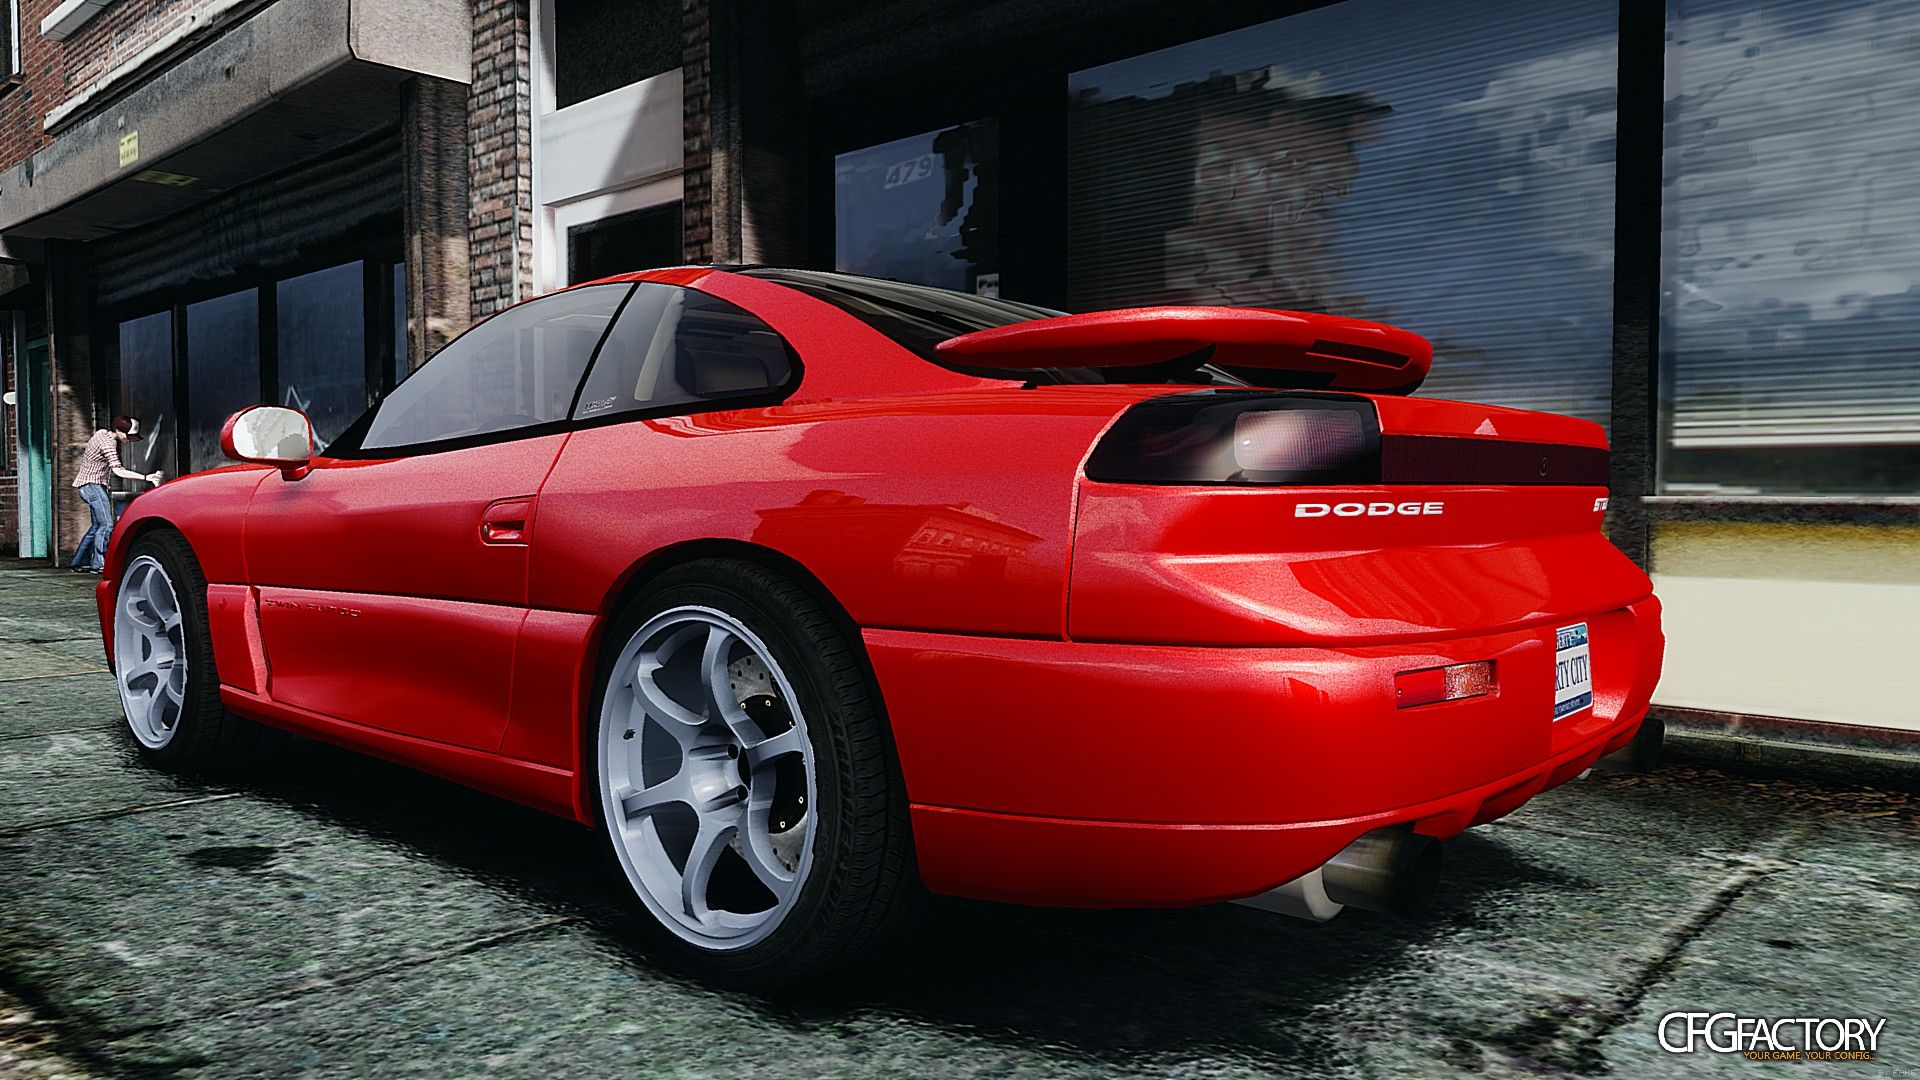 1996 Dodge Stealth Rt Twin Turbo For Sale Autos Post